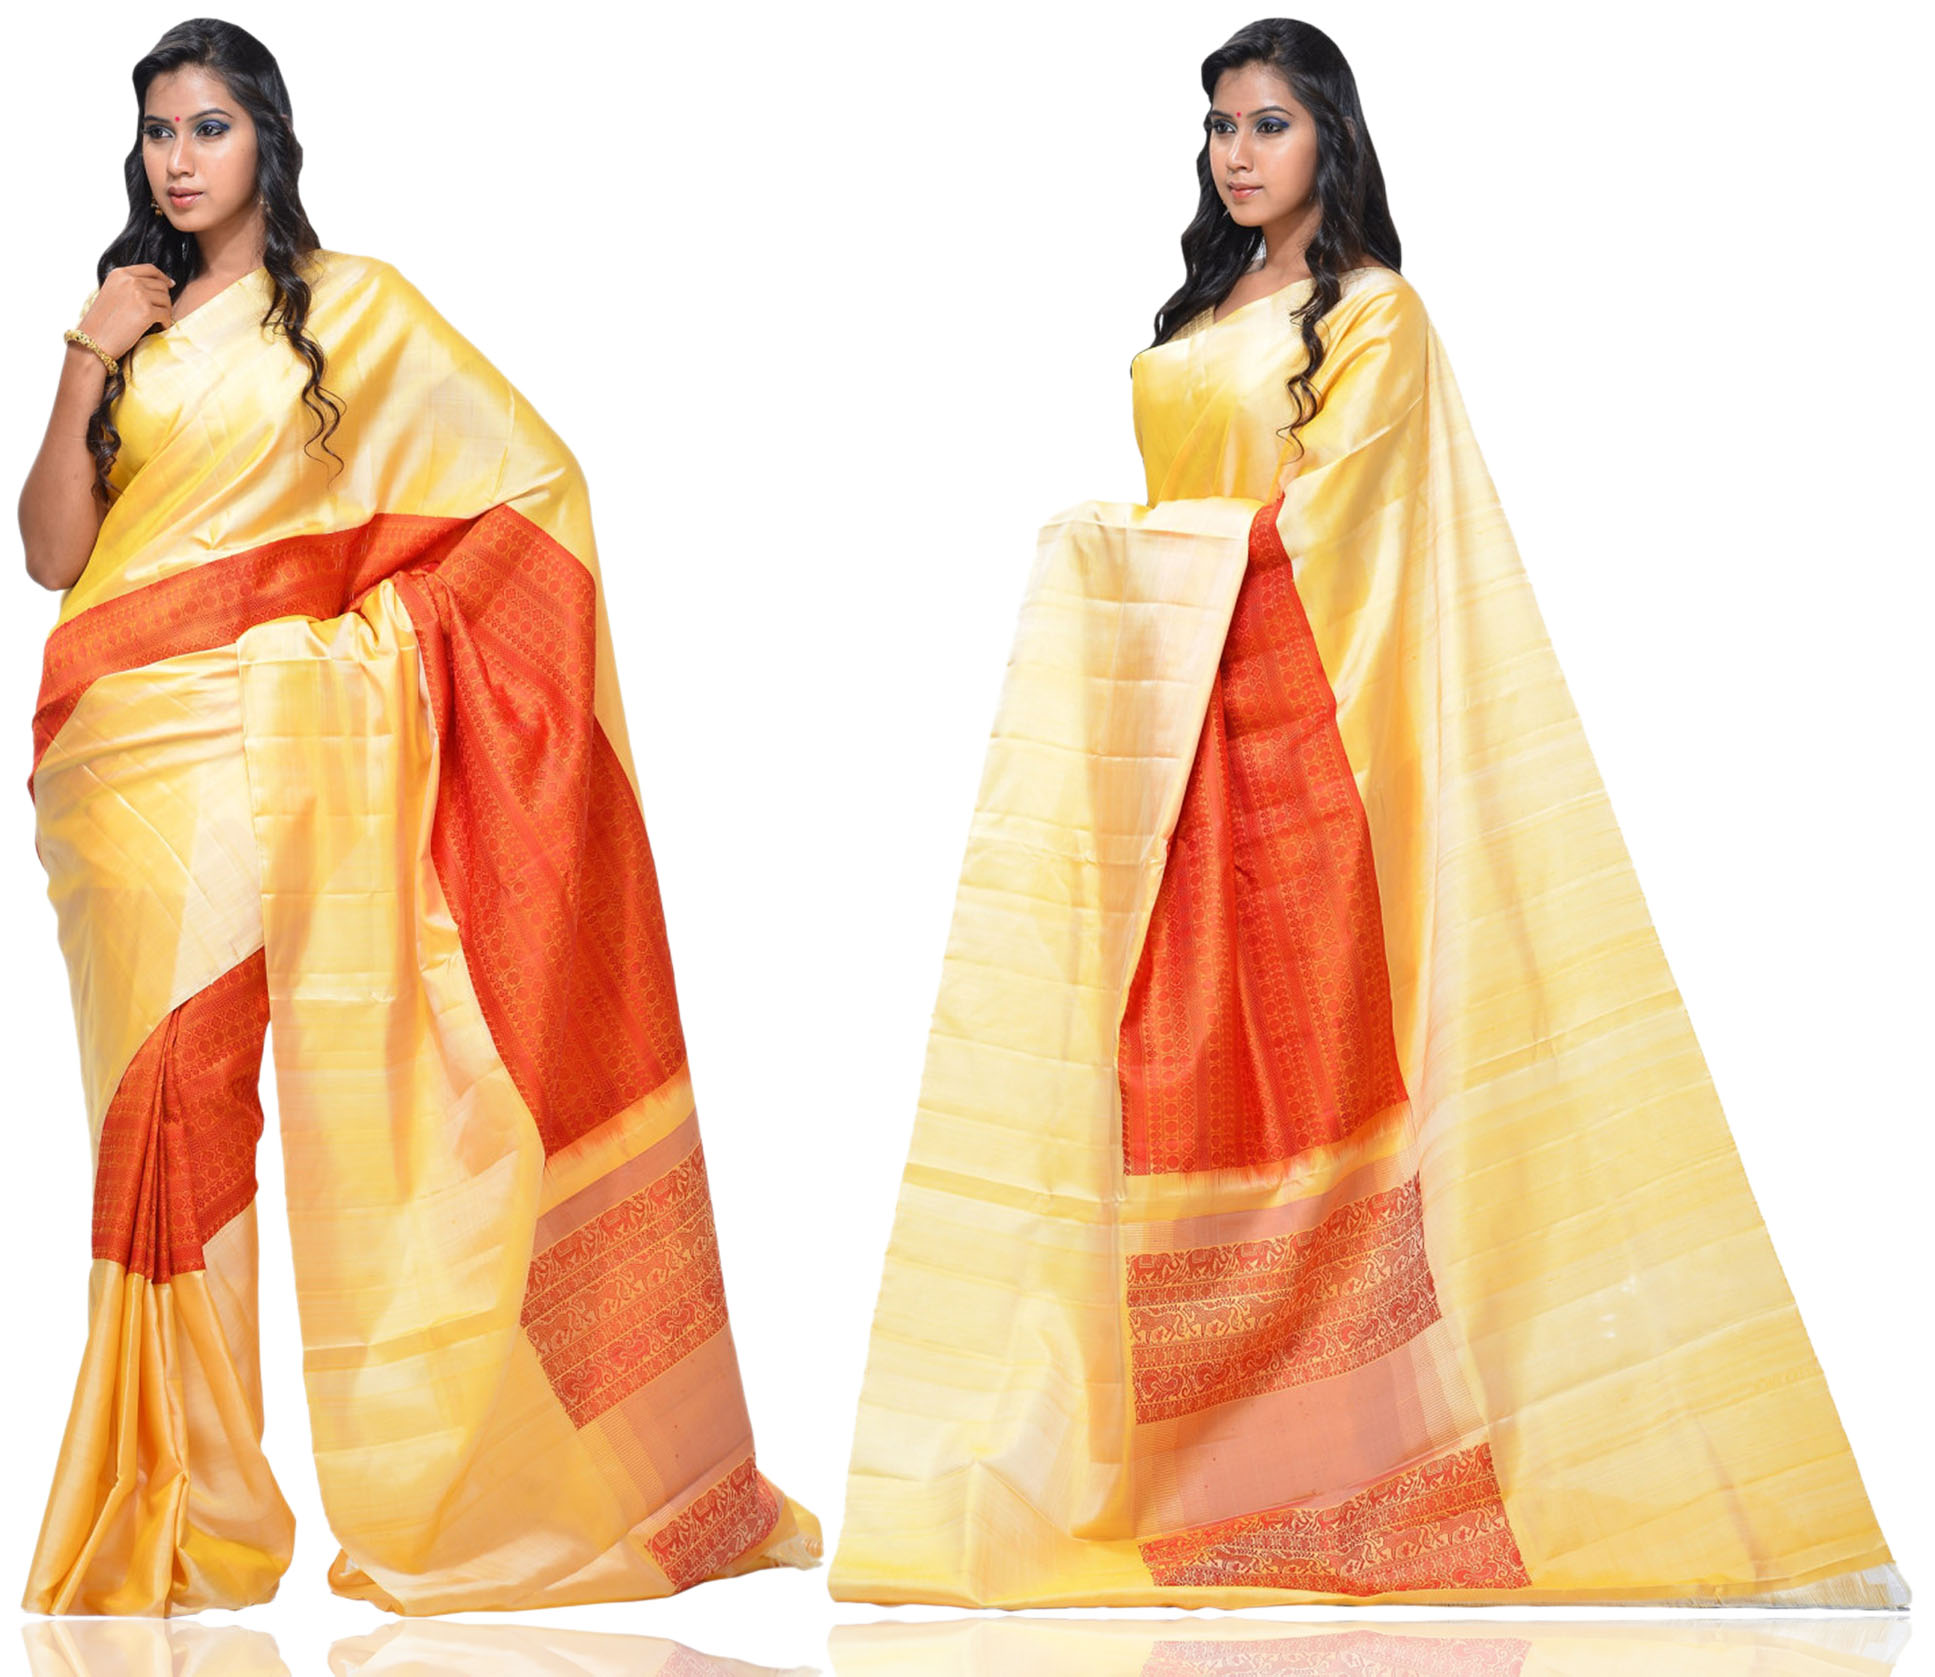 Price: - 13500 /-   New Arrivals Arrived kanchipuram Sarees with New Design. These Saree Gives You a Traditional Look of South India. This Saree Worn at Wedding, Parties, Festivals, Functions. Sign up now for E-book you will be updated with latest collection of ethnic verities. For More Info Click on :- www.uppada.com  We manufacture of Uppada sarees, Paithani sarees, Banarasi sarees, Venkatagiri Sarees, Gadwal Sarees, Khadi sarees, Hand Painted Kalamkari Dupatta, Ikkat sarees, Kanchipuram Sarees, Atr Poly Silk Sarees, Dupattas, Stoles etc. For more info us at 040 64640303, 441905005.  Buy online: - uppada.com - by Paithani, Hyderabad